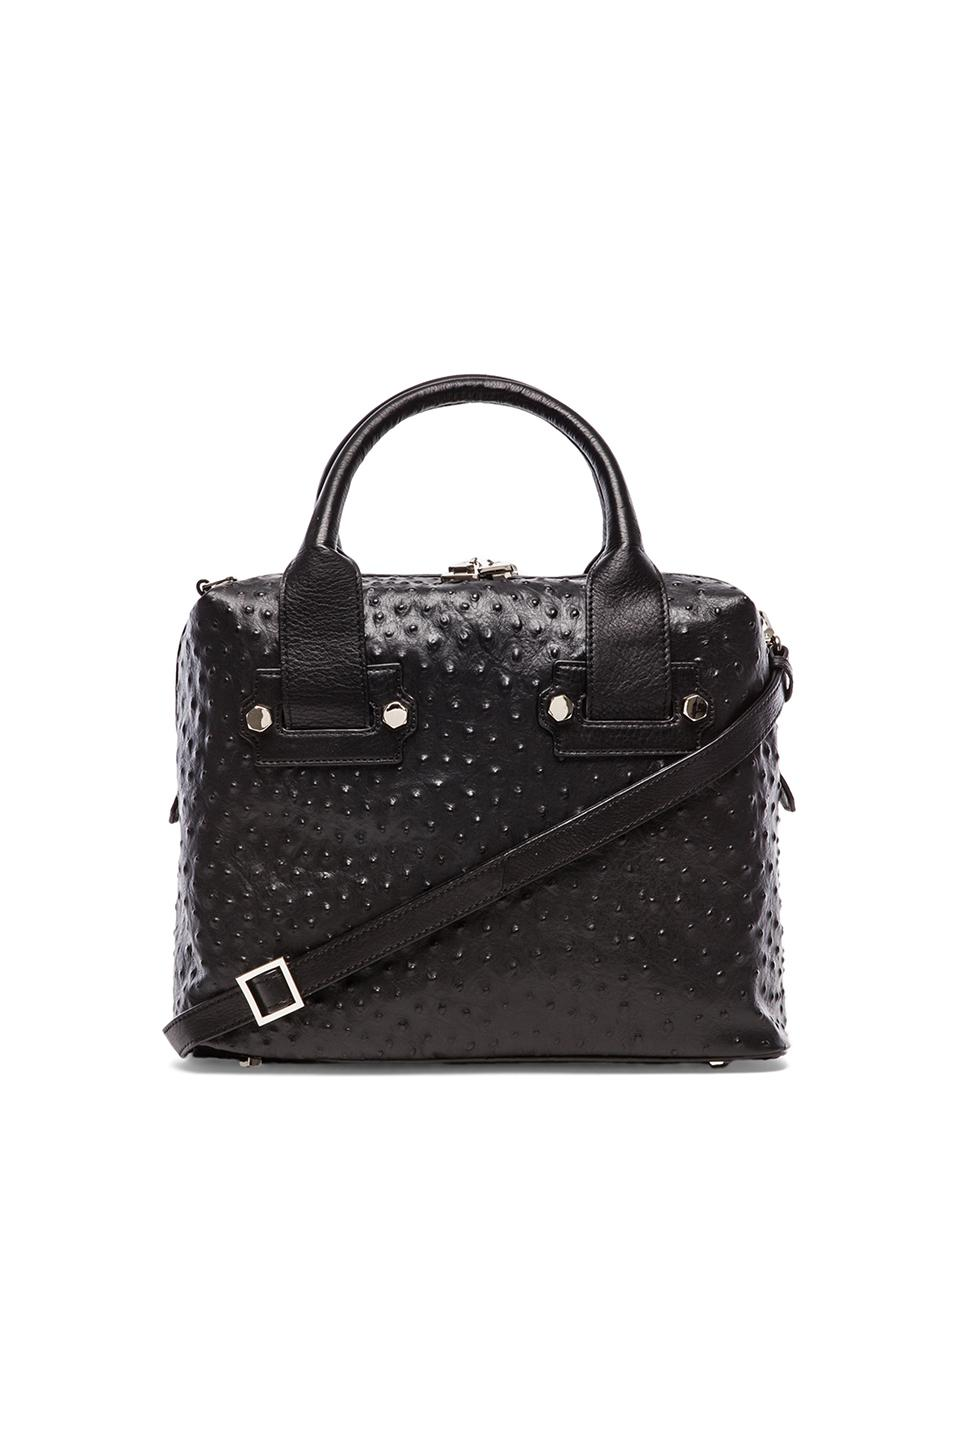 Nanette Lepore Seduction Satchel in Black